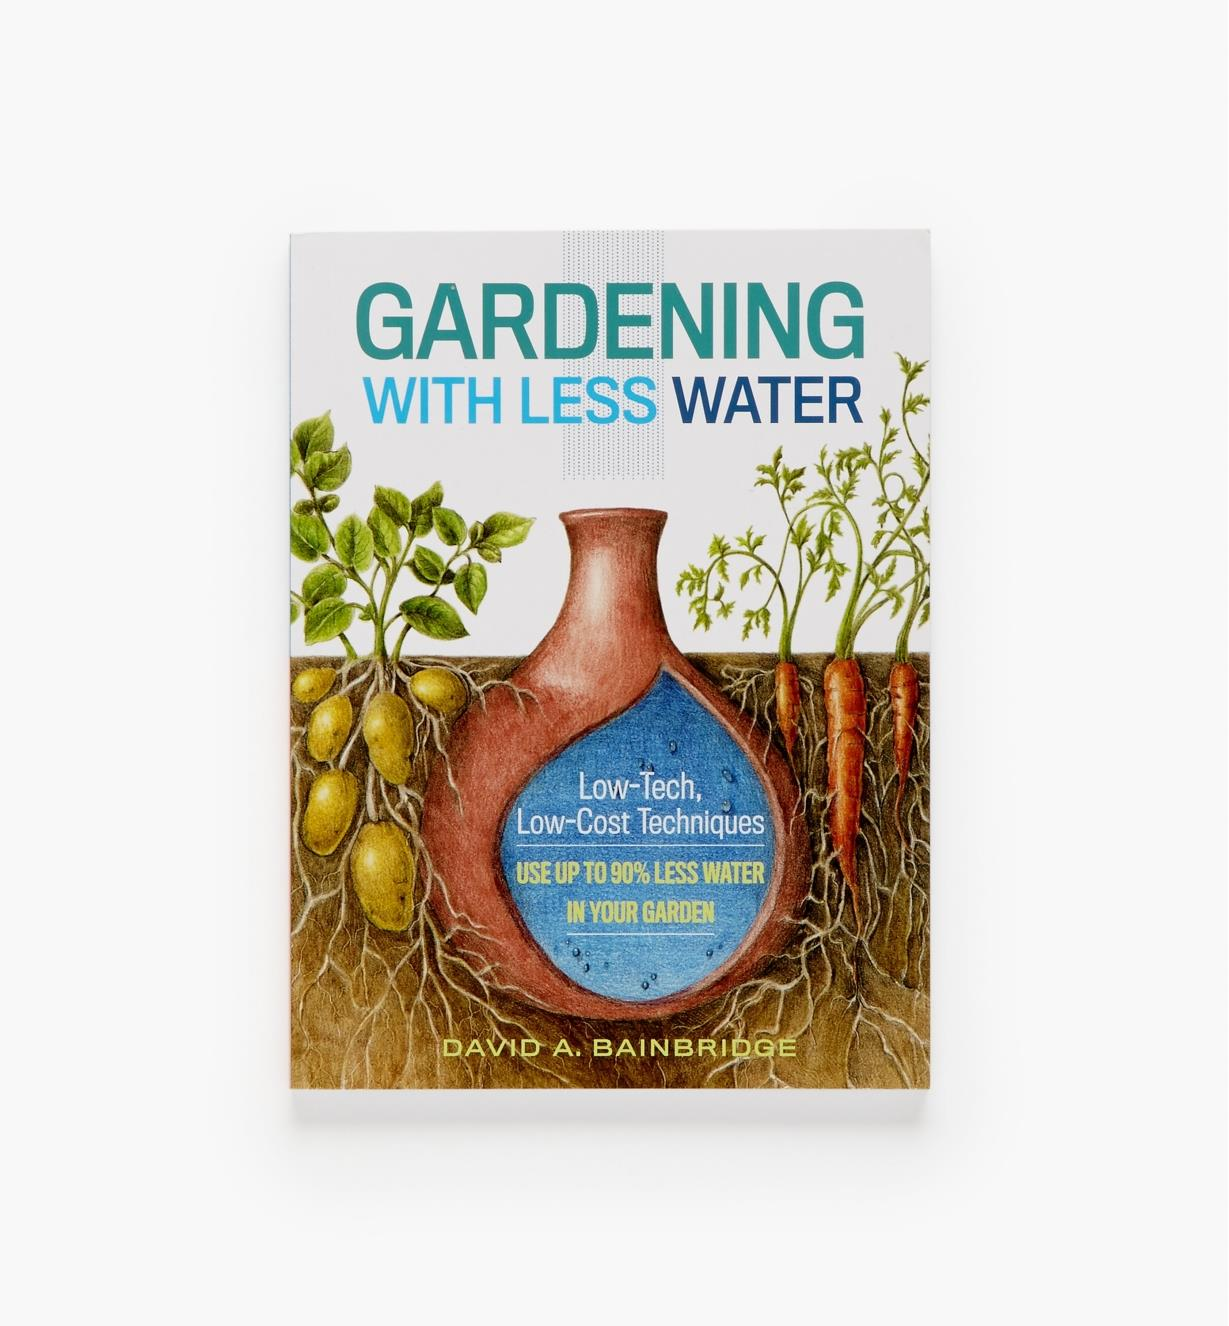 LA964 - Gardening with Less Water